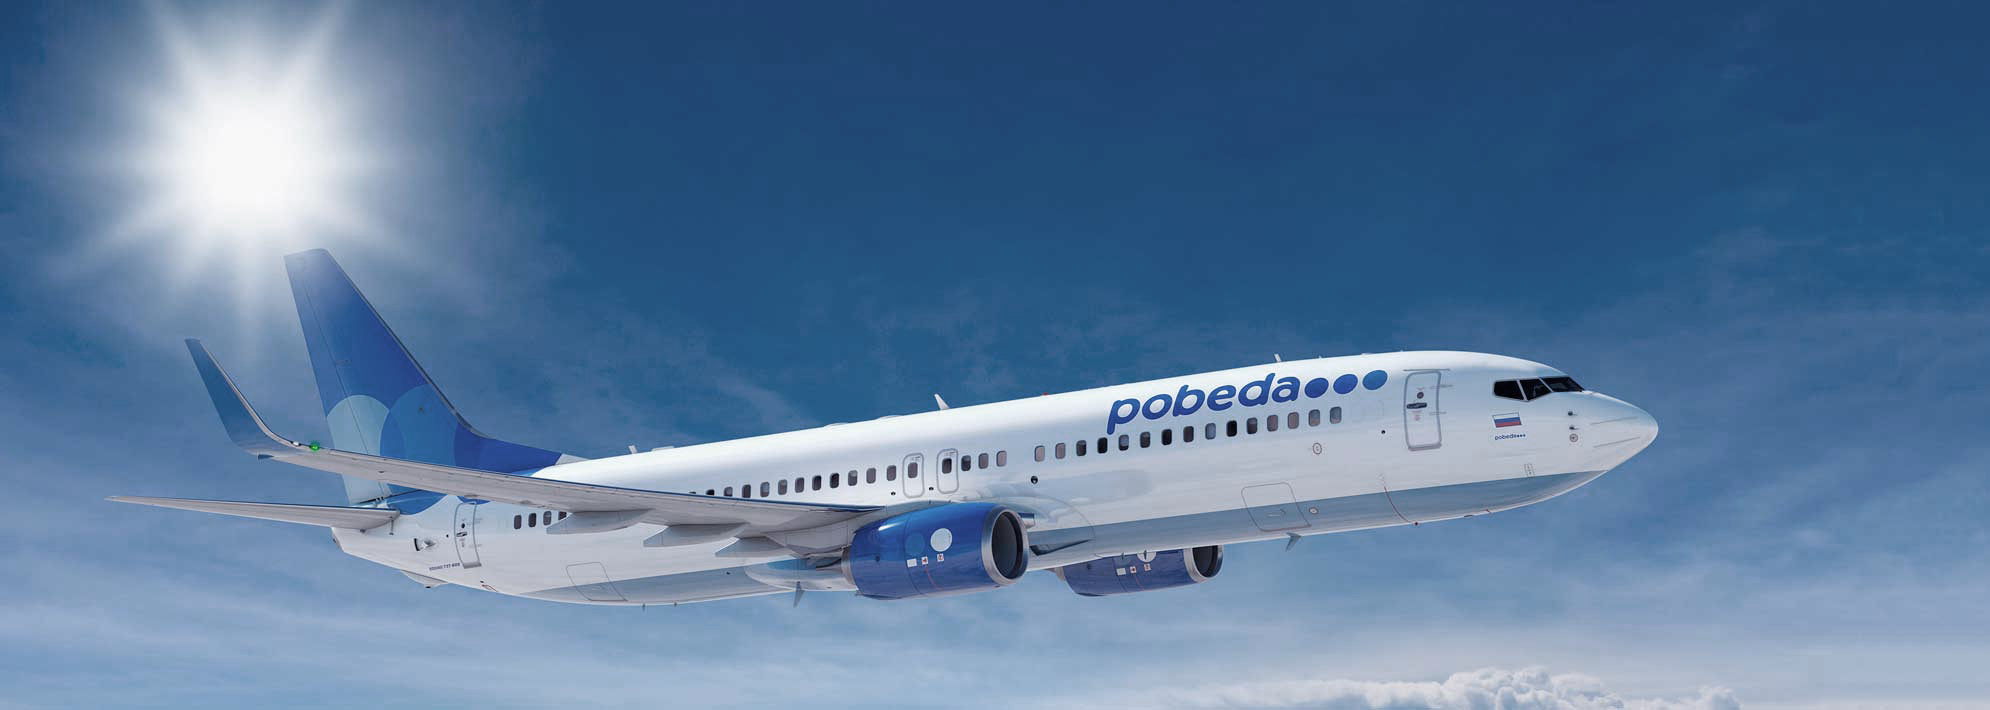 Pobeda selects Newshore as its service provider